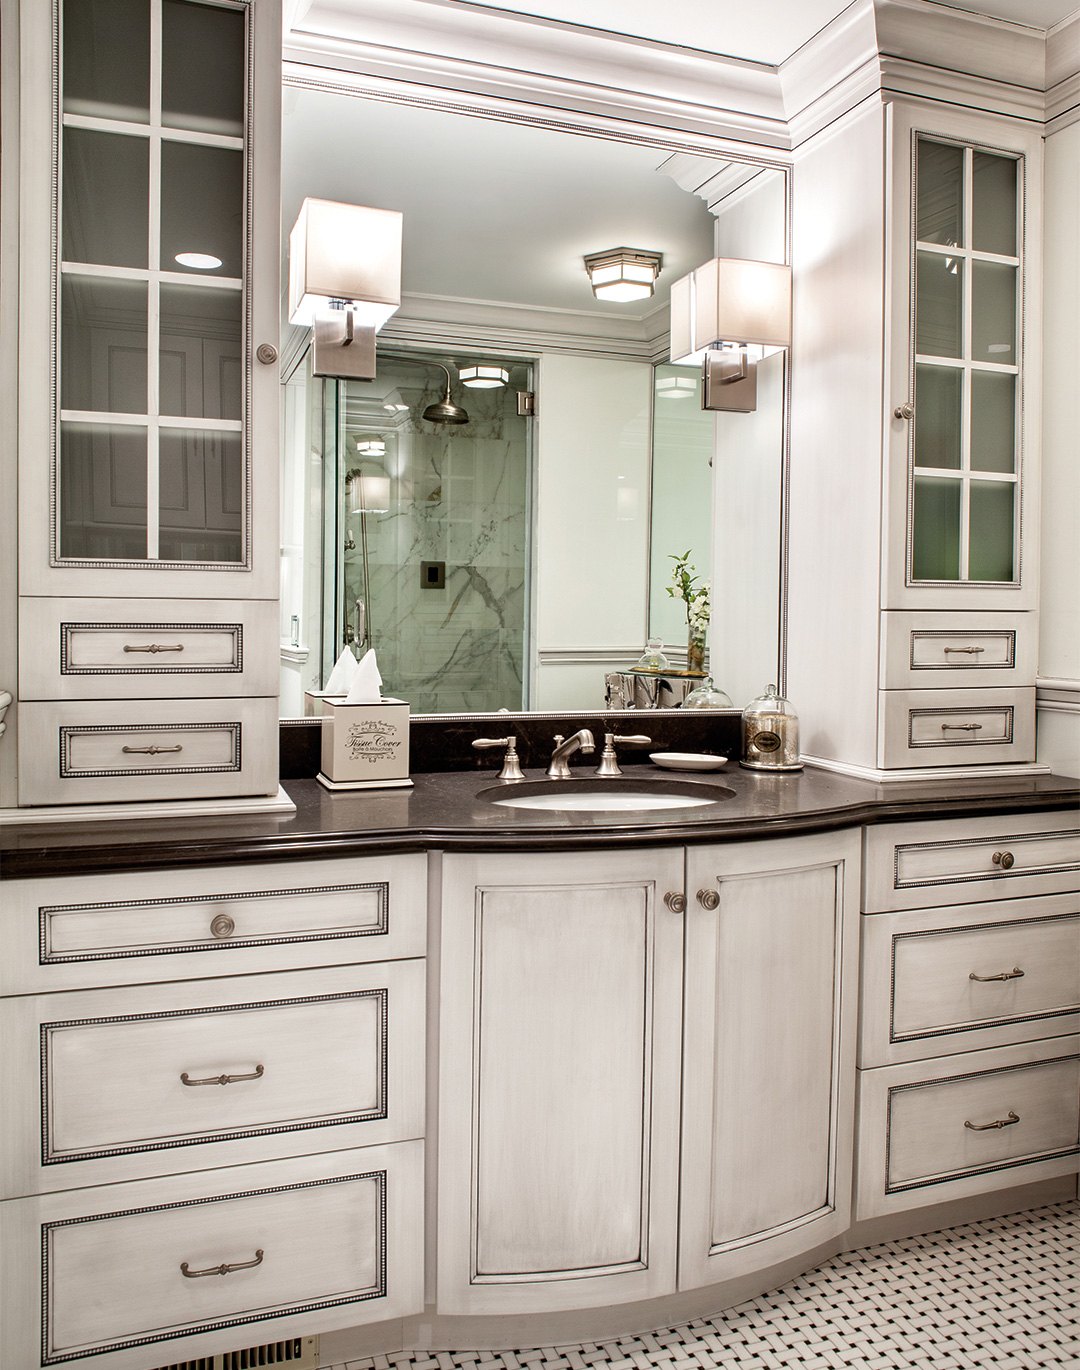 Bathroom cabinets with form and function plain fancy cabinetry for Bathroom cabinet design plans